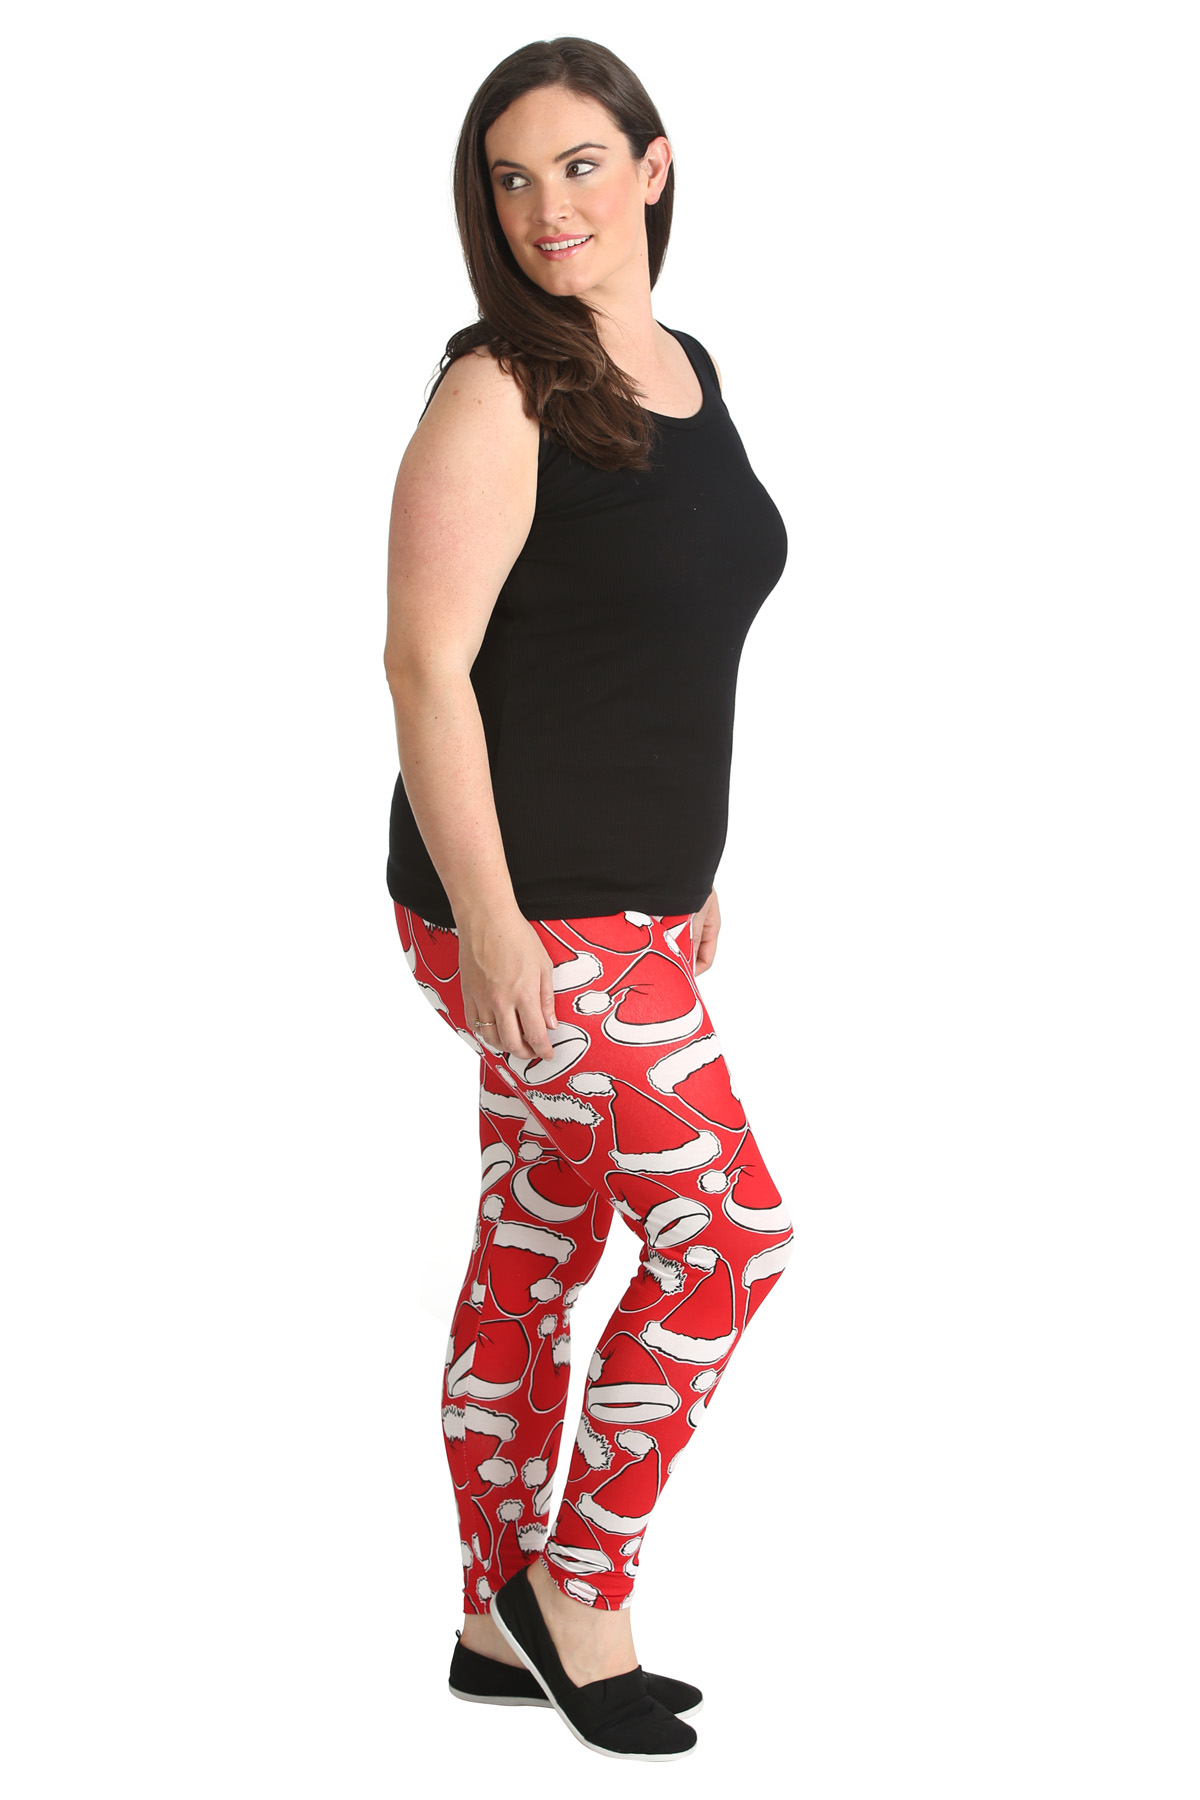 See all results for plus size tights for women. Top Rated from Our Brands See more. Core Our Brand. Core 10 Women's Icon Series - The Warrior Mesh Legging (XS-XL, Plus Size 1X-3X) $ - $ $ 58 $ 69 00 Prime. out of 5 stars Core